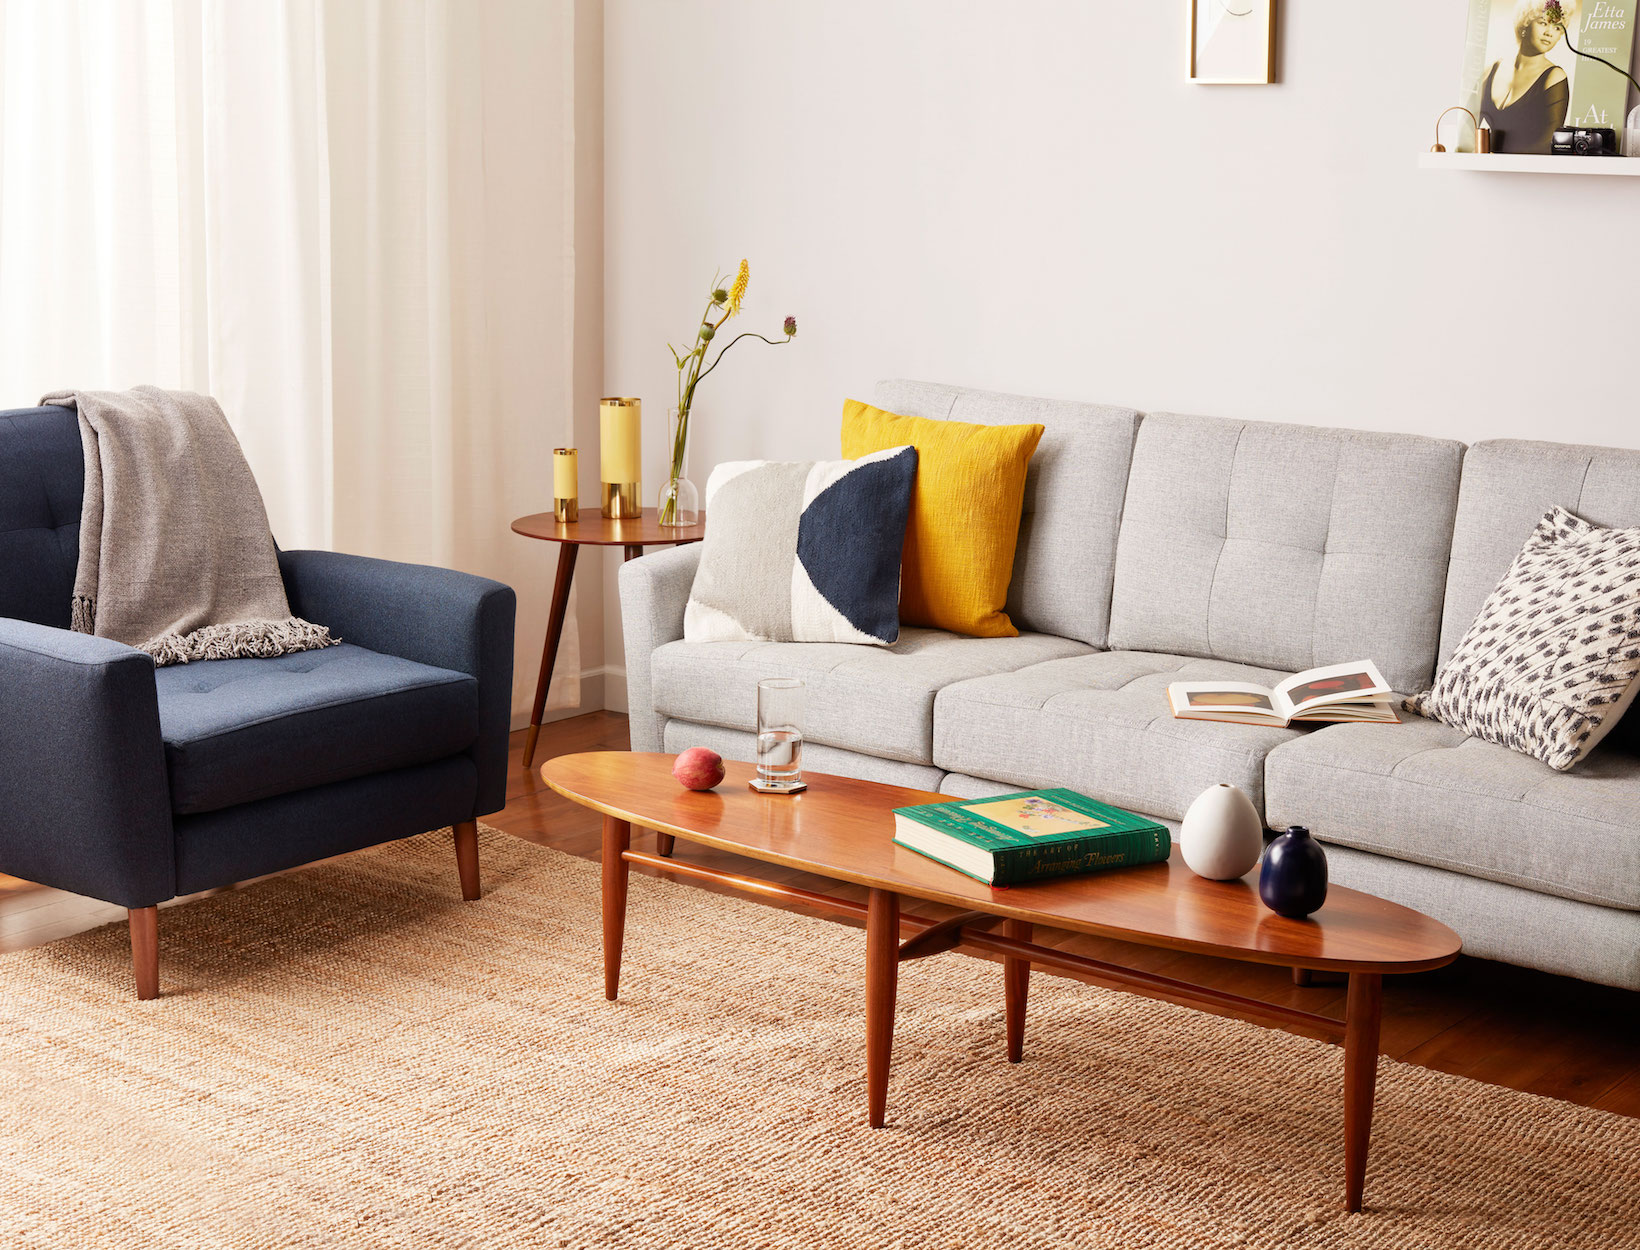 Five Furniture Pieces Every Home Needs